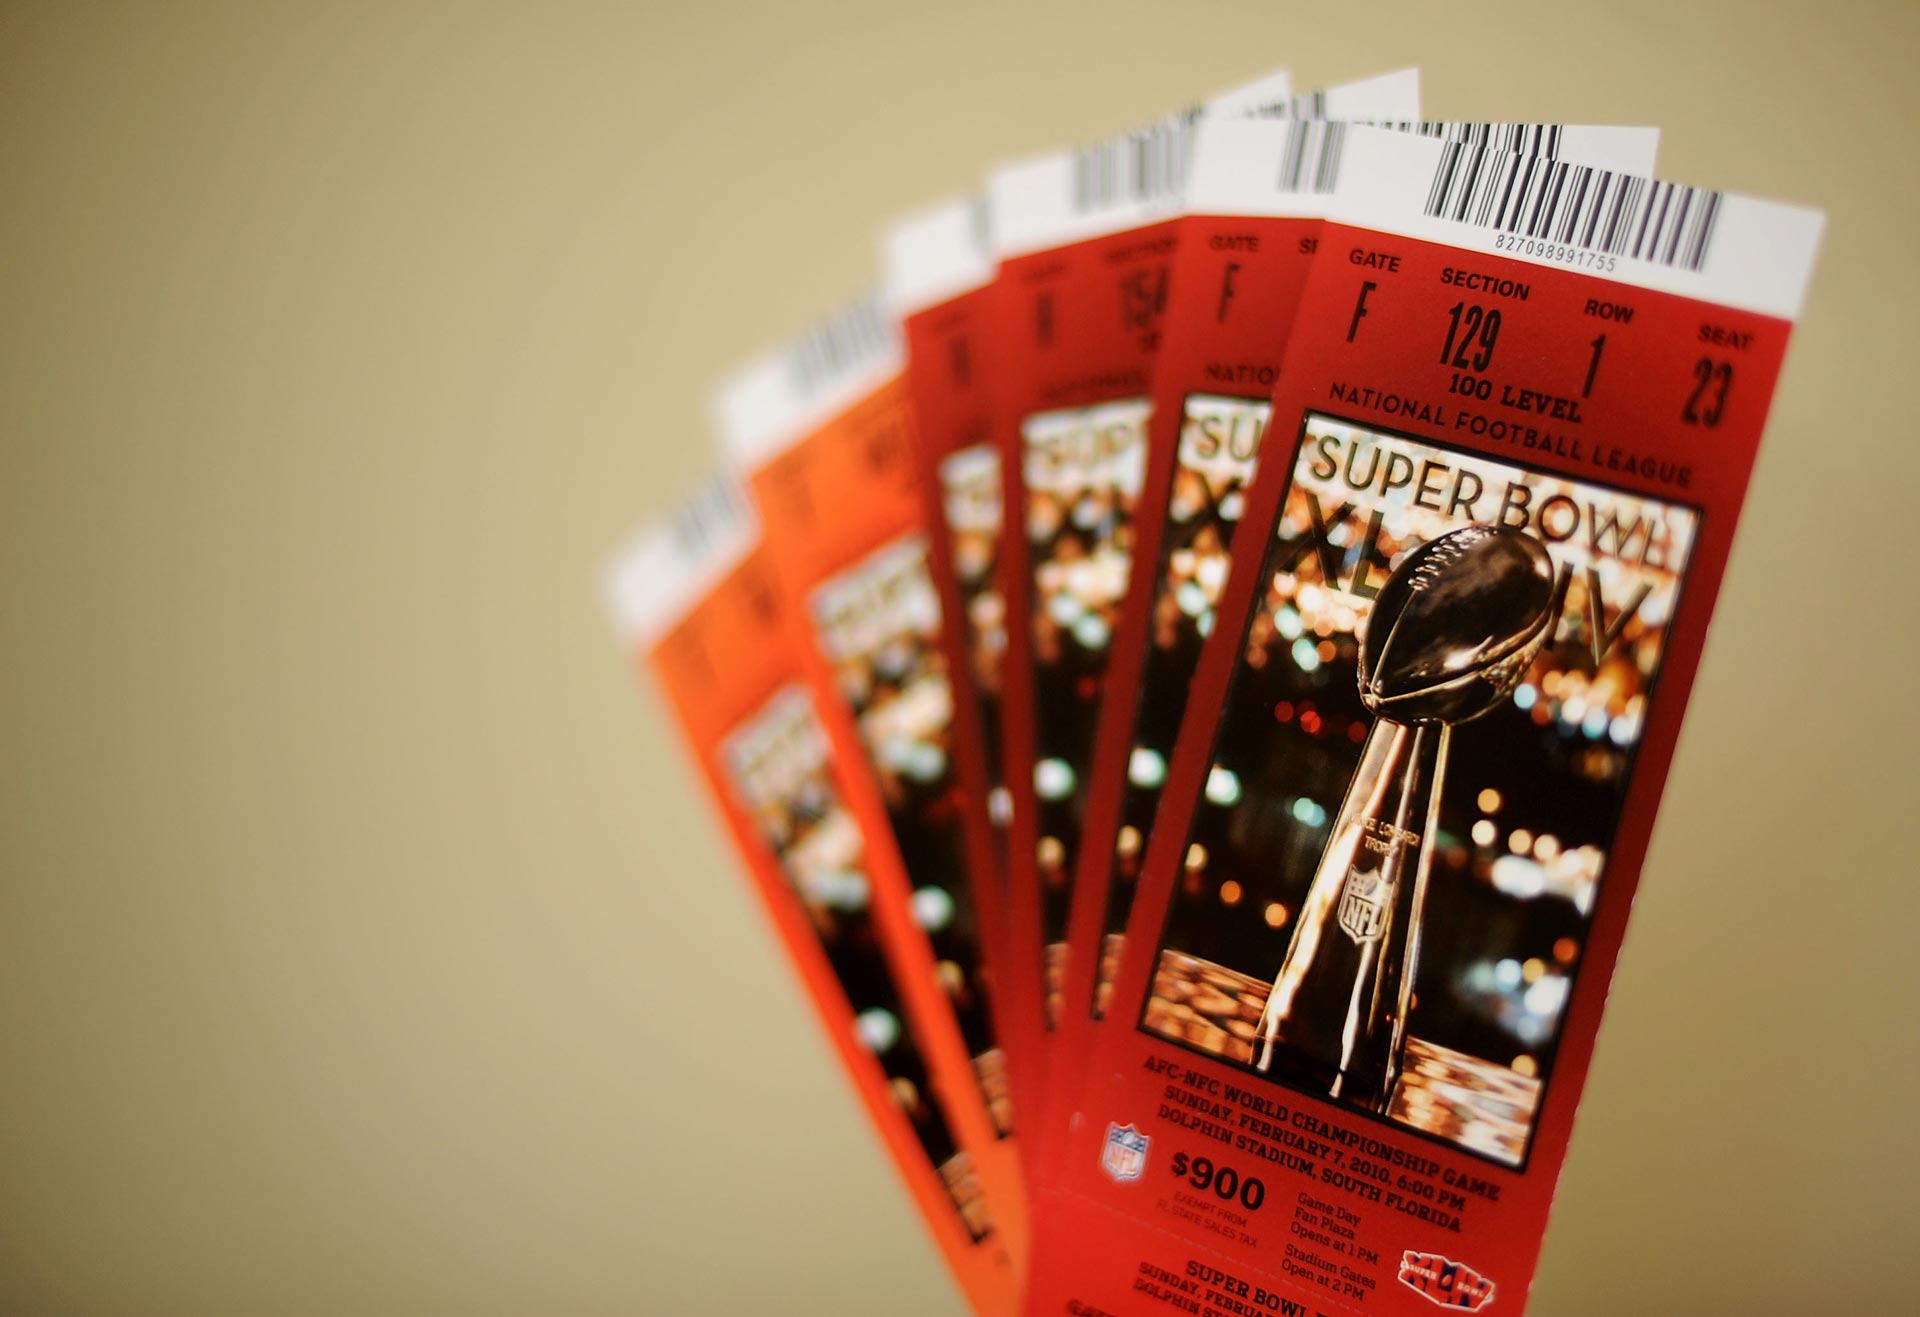 Unlike these tickets for Super Bowl XLIV, tickets for Super Bowl L feature holograms - but even those can be mimicked by counterfeiters.